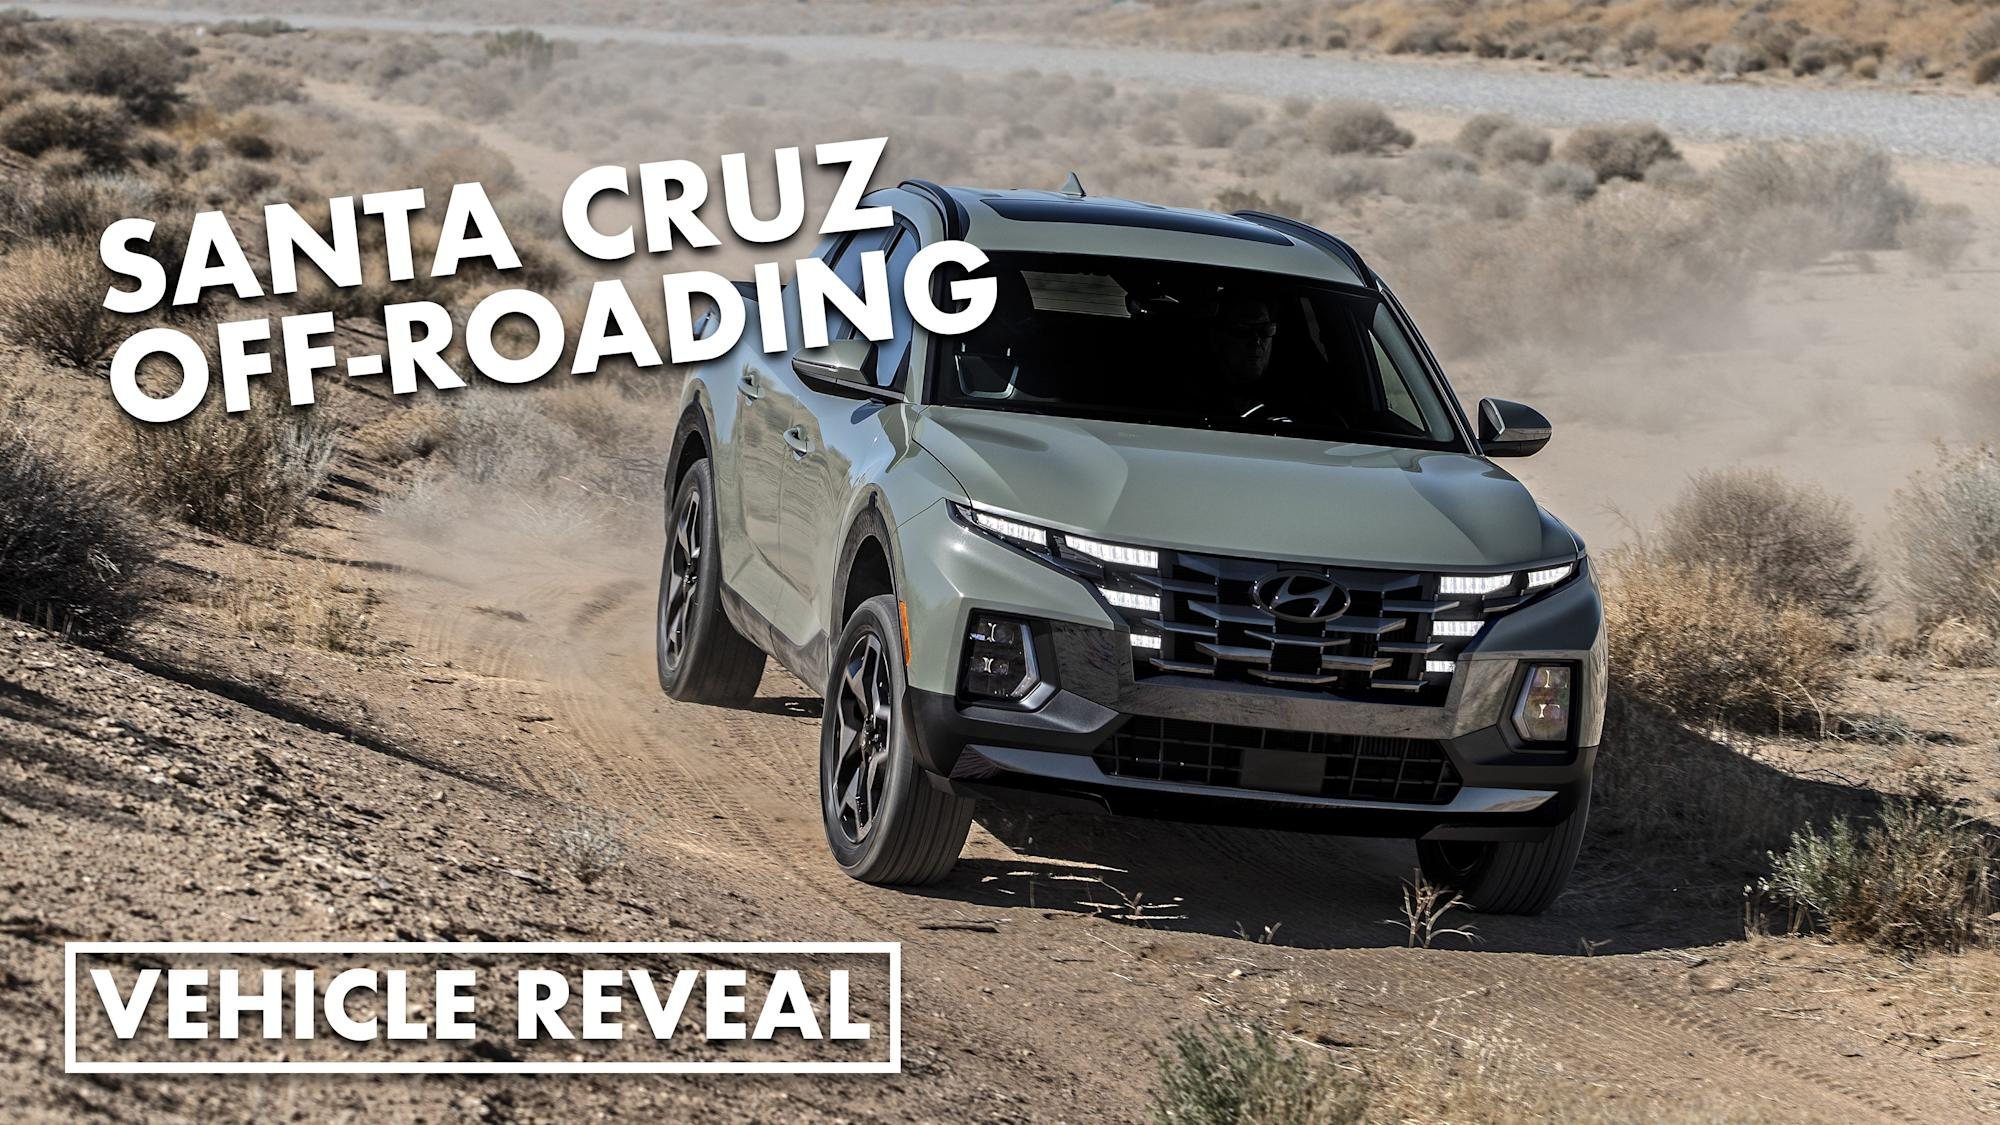 Off-roading footage of the 2022 Hyundai Santa Cruz